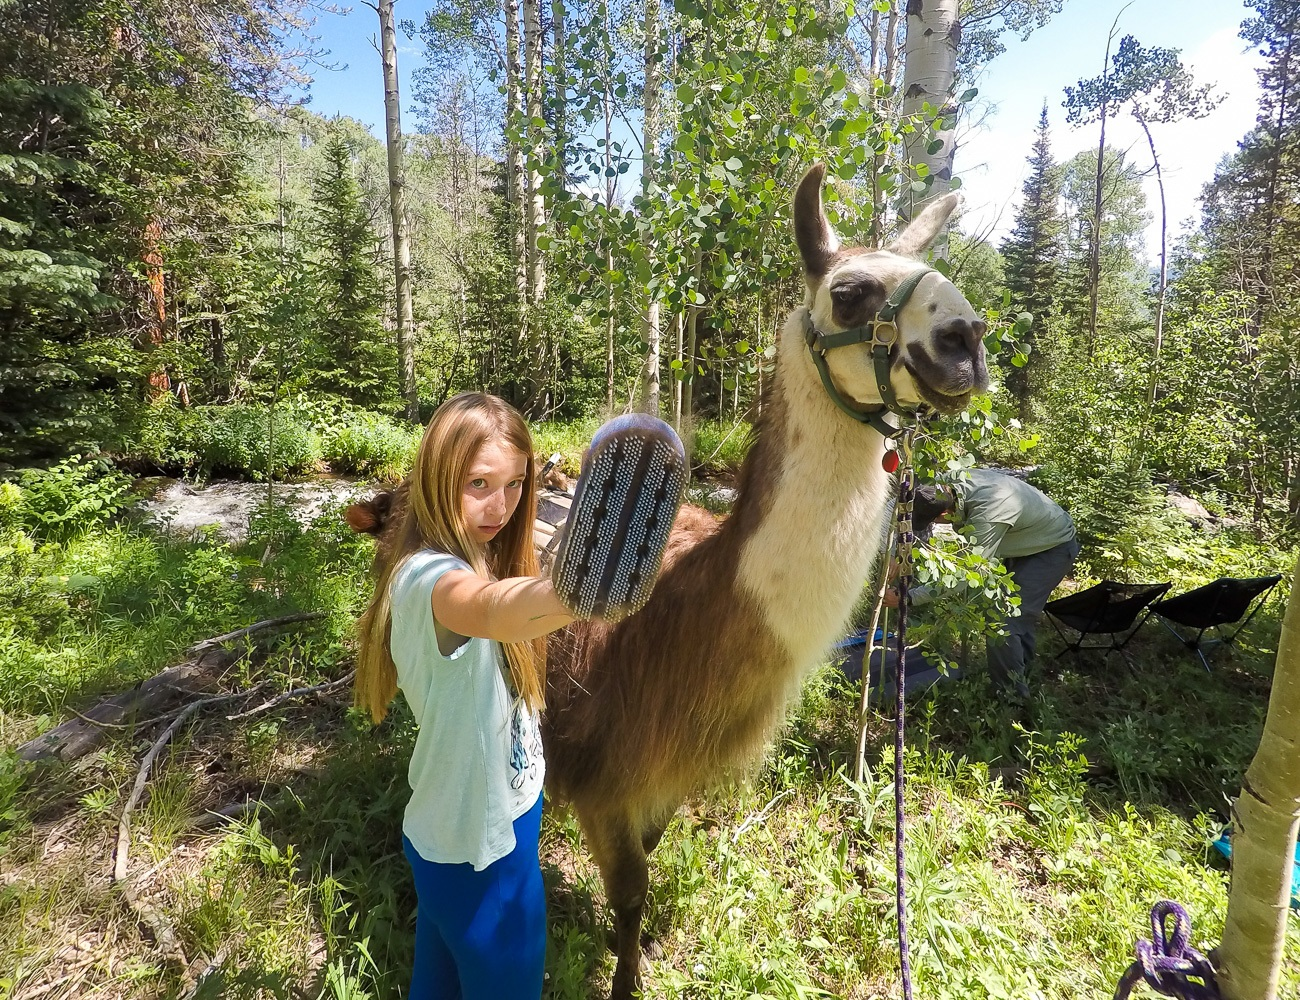 Brushing a llama during a picnic and trek with Paragon Guides in Vail, Colorado.